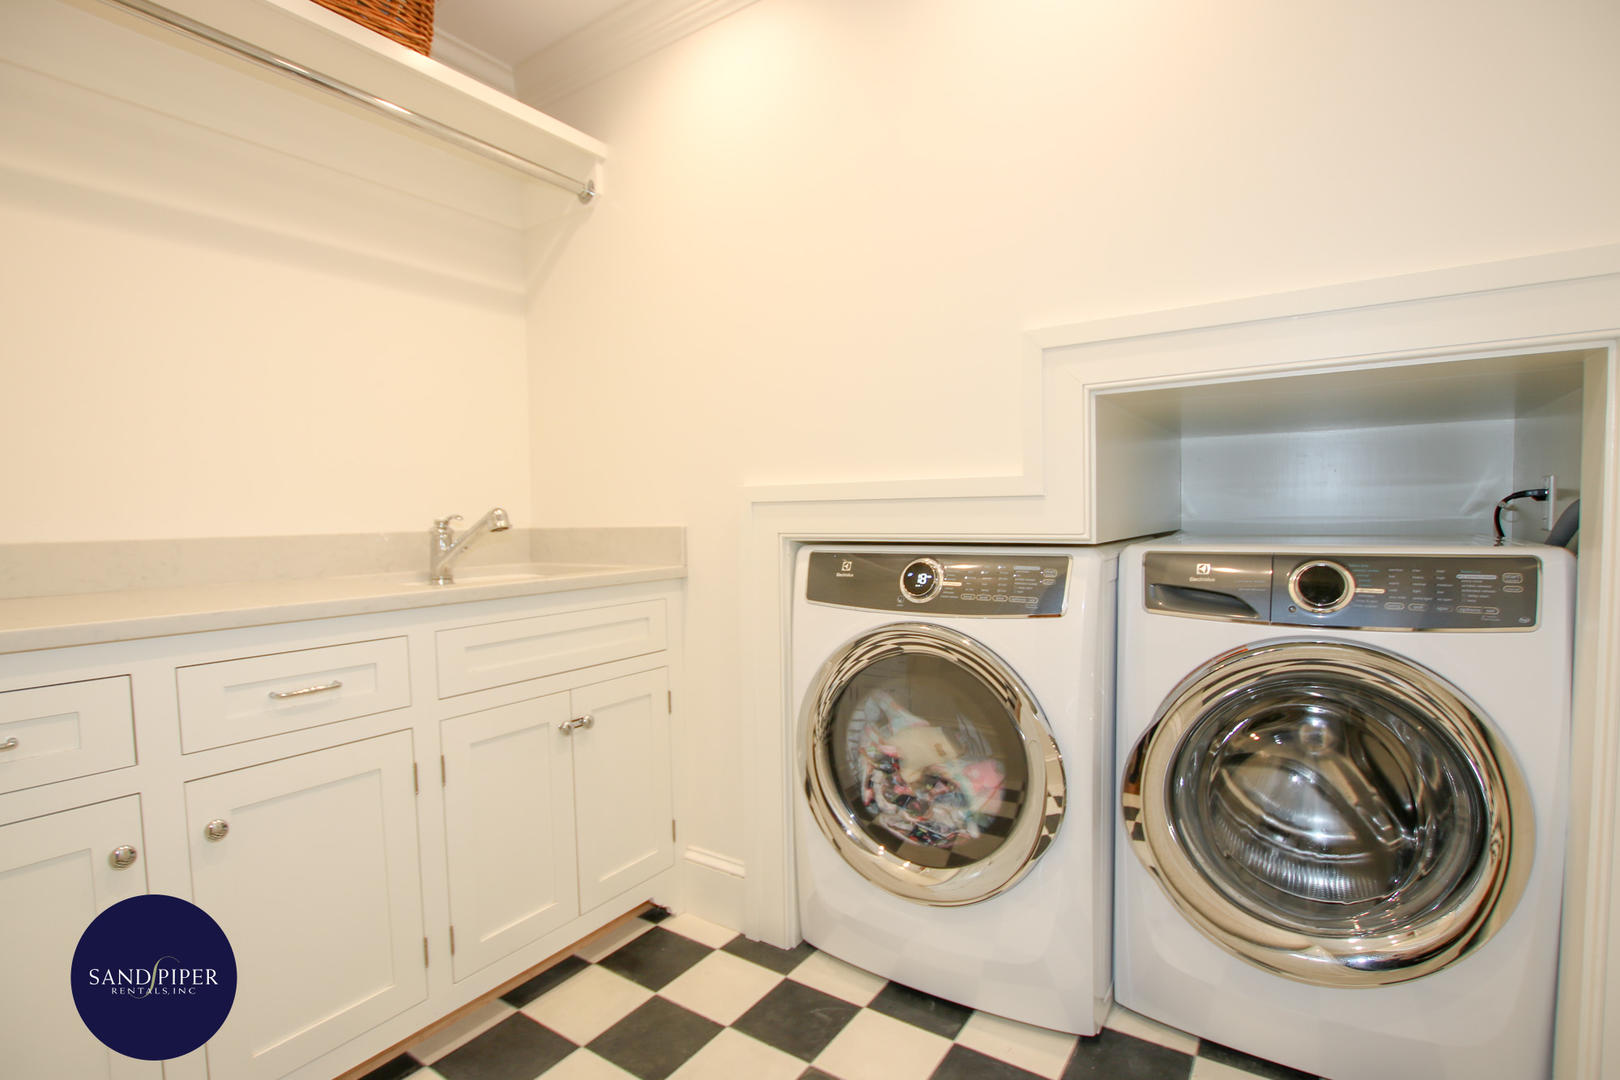 Laundry room first floor